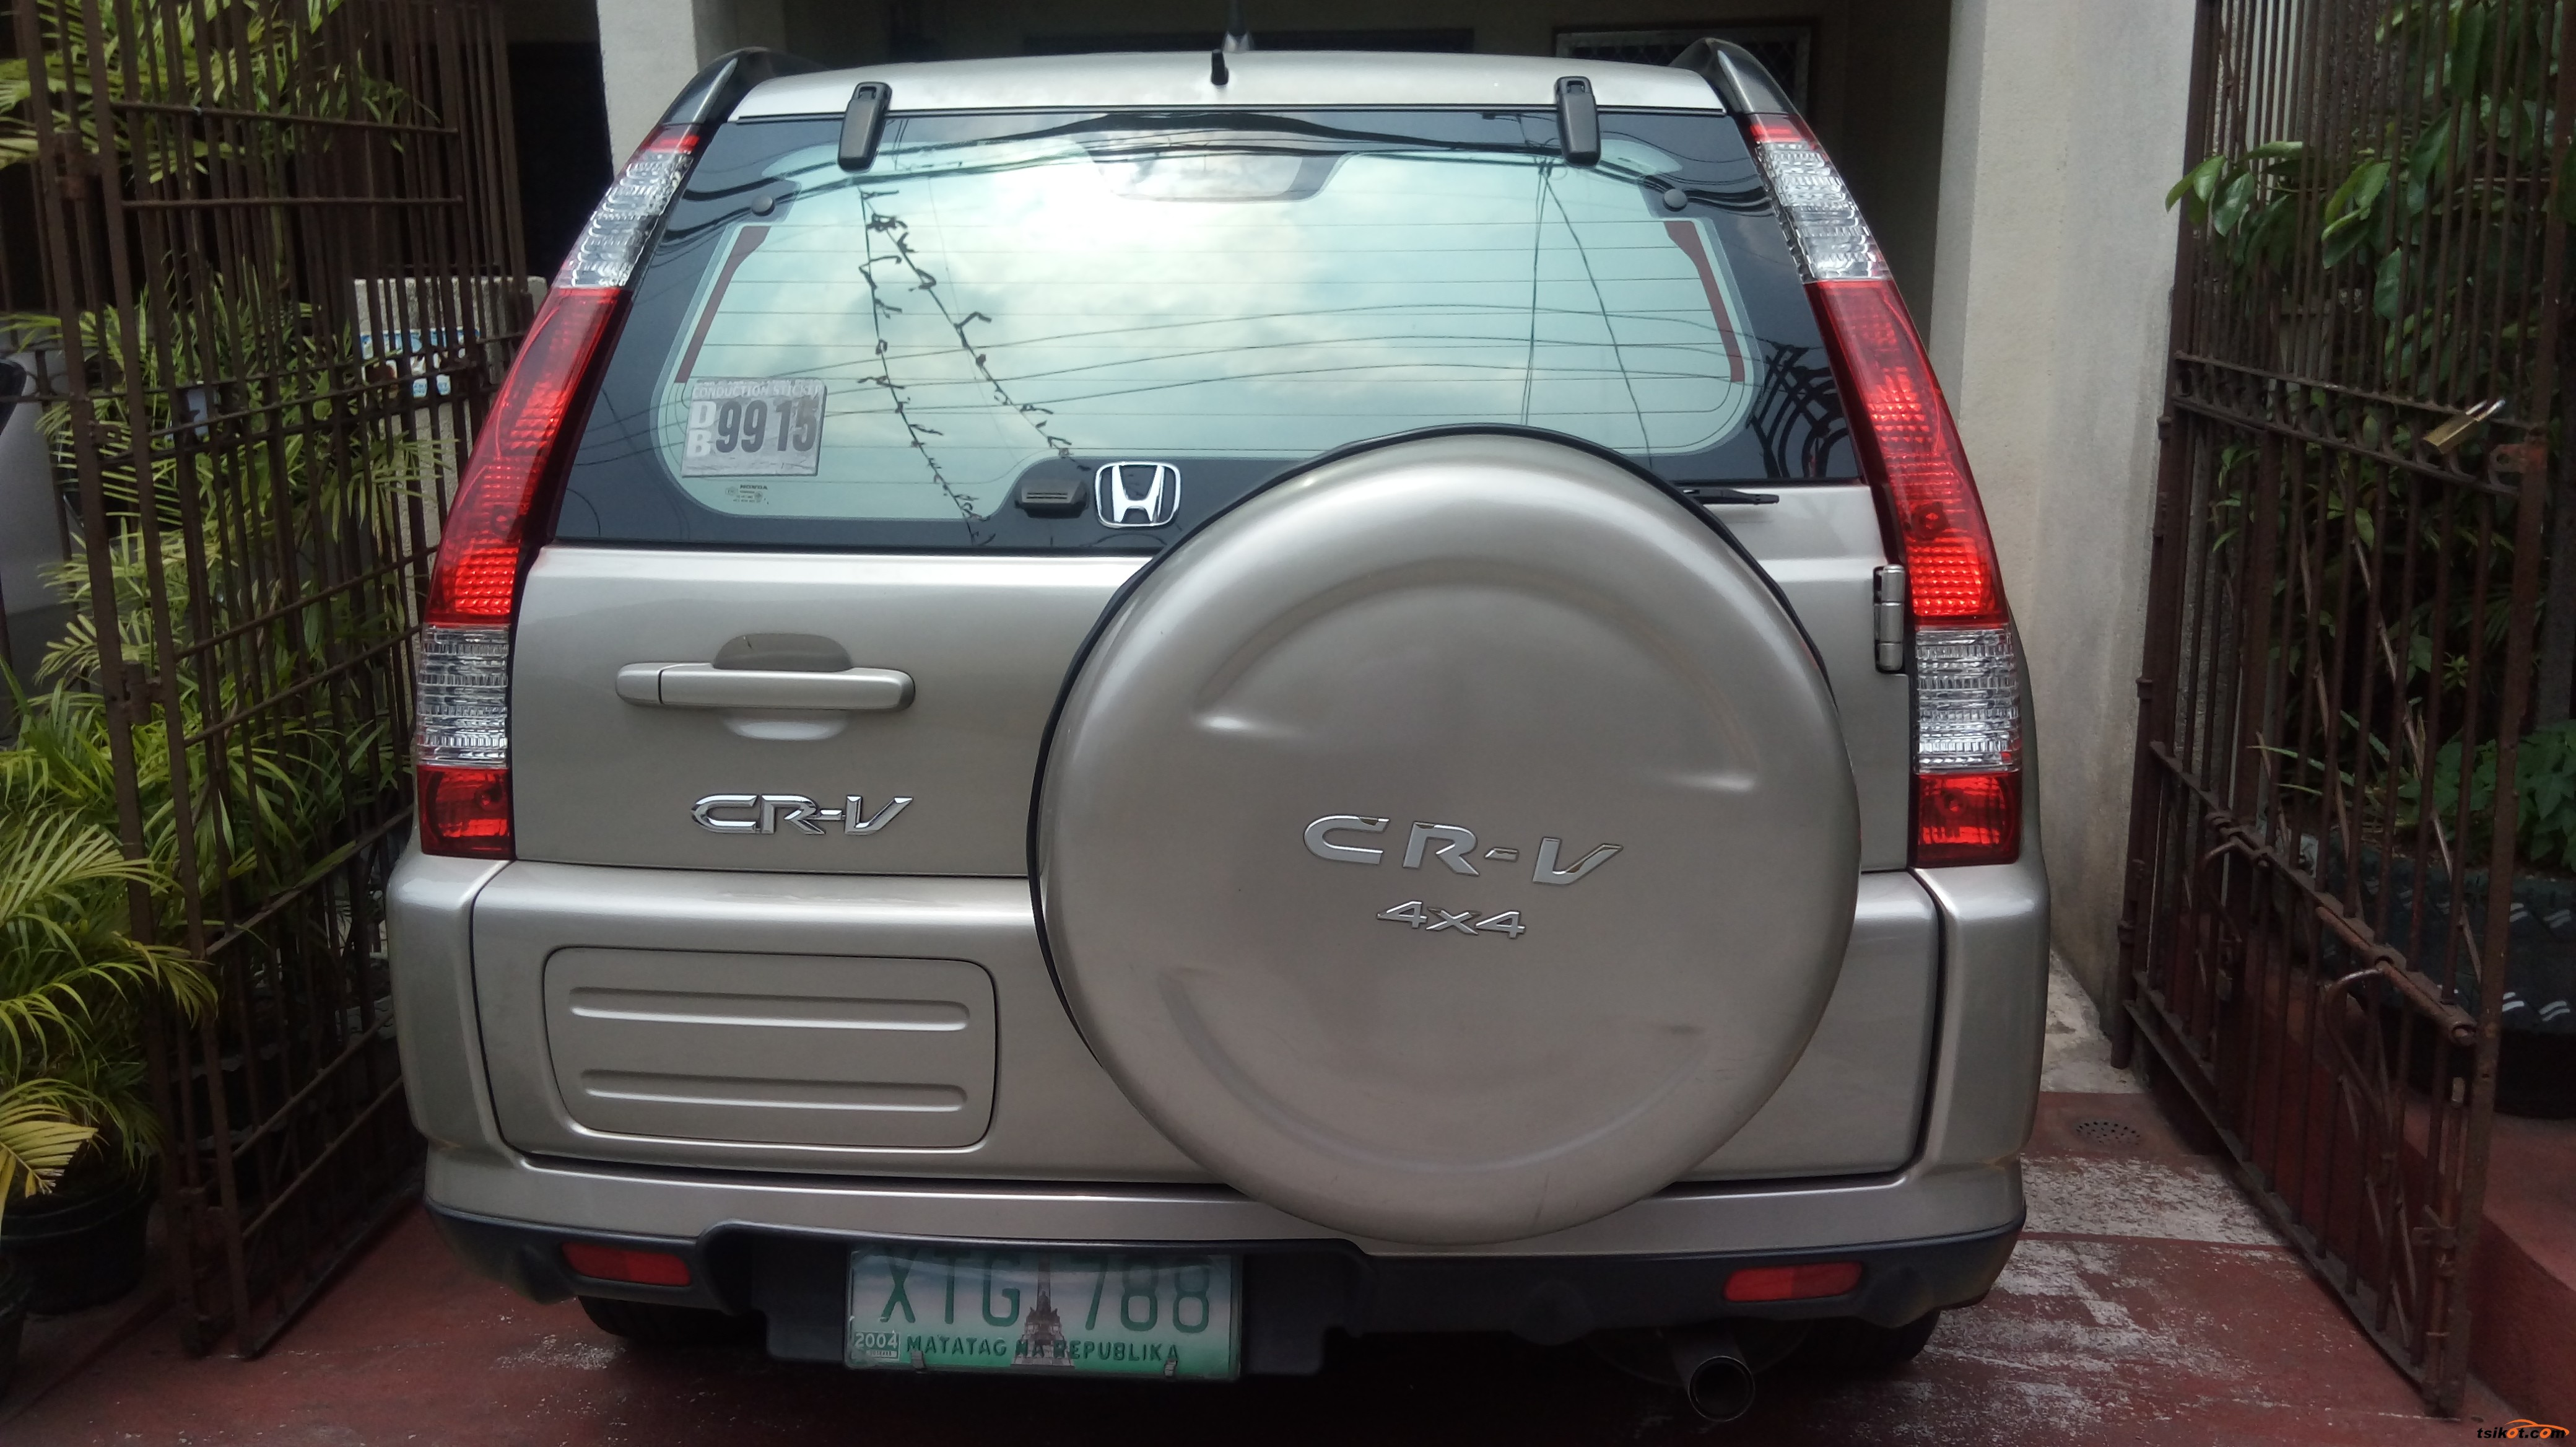 Honda Cr-V 2005 - Car for Sale Metro Manila